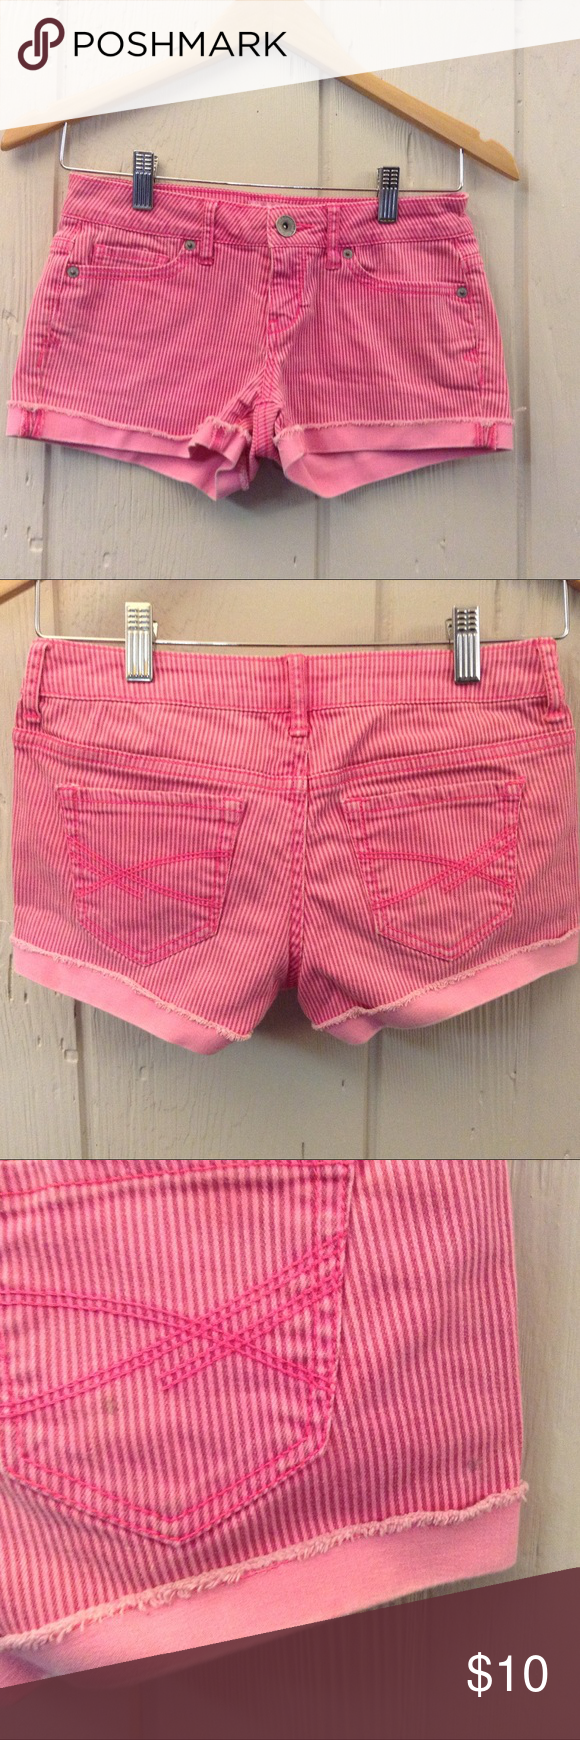 Aeropostale hot pink shorts Striped denim. Perfect for summer! Aeropostale Shorts